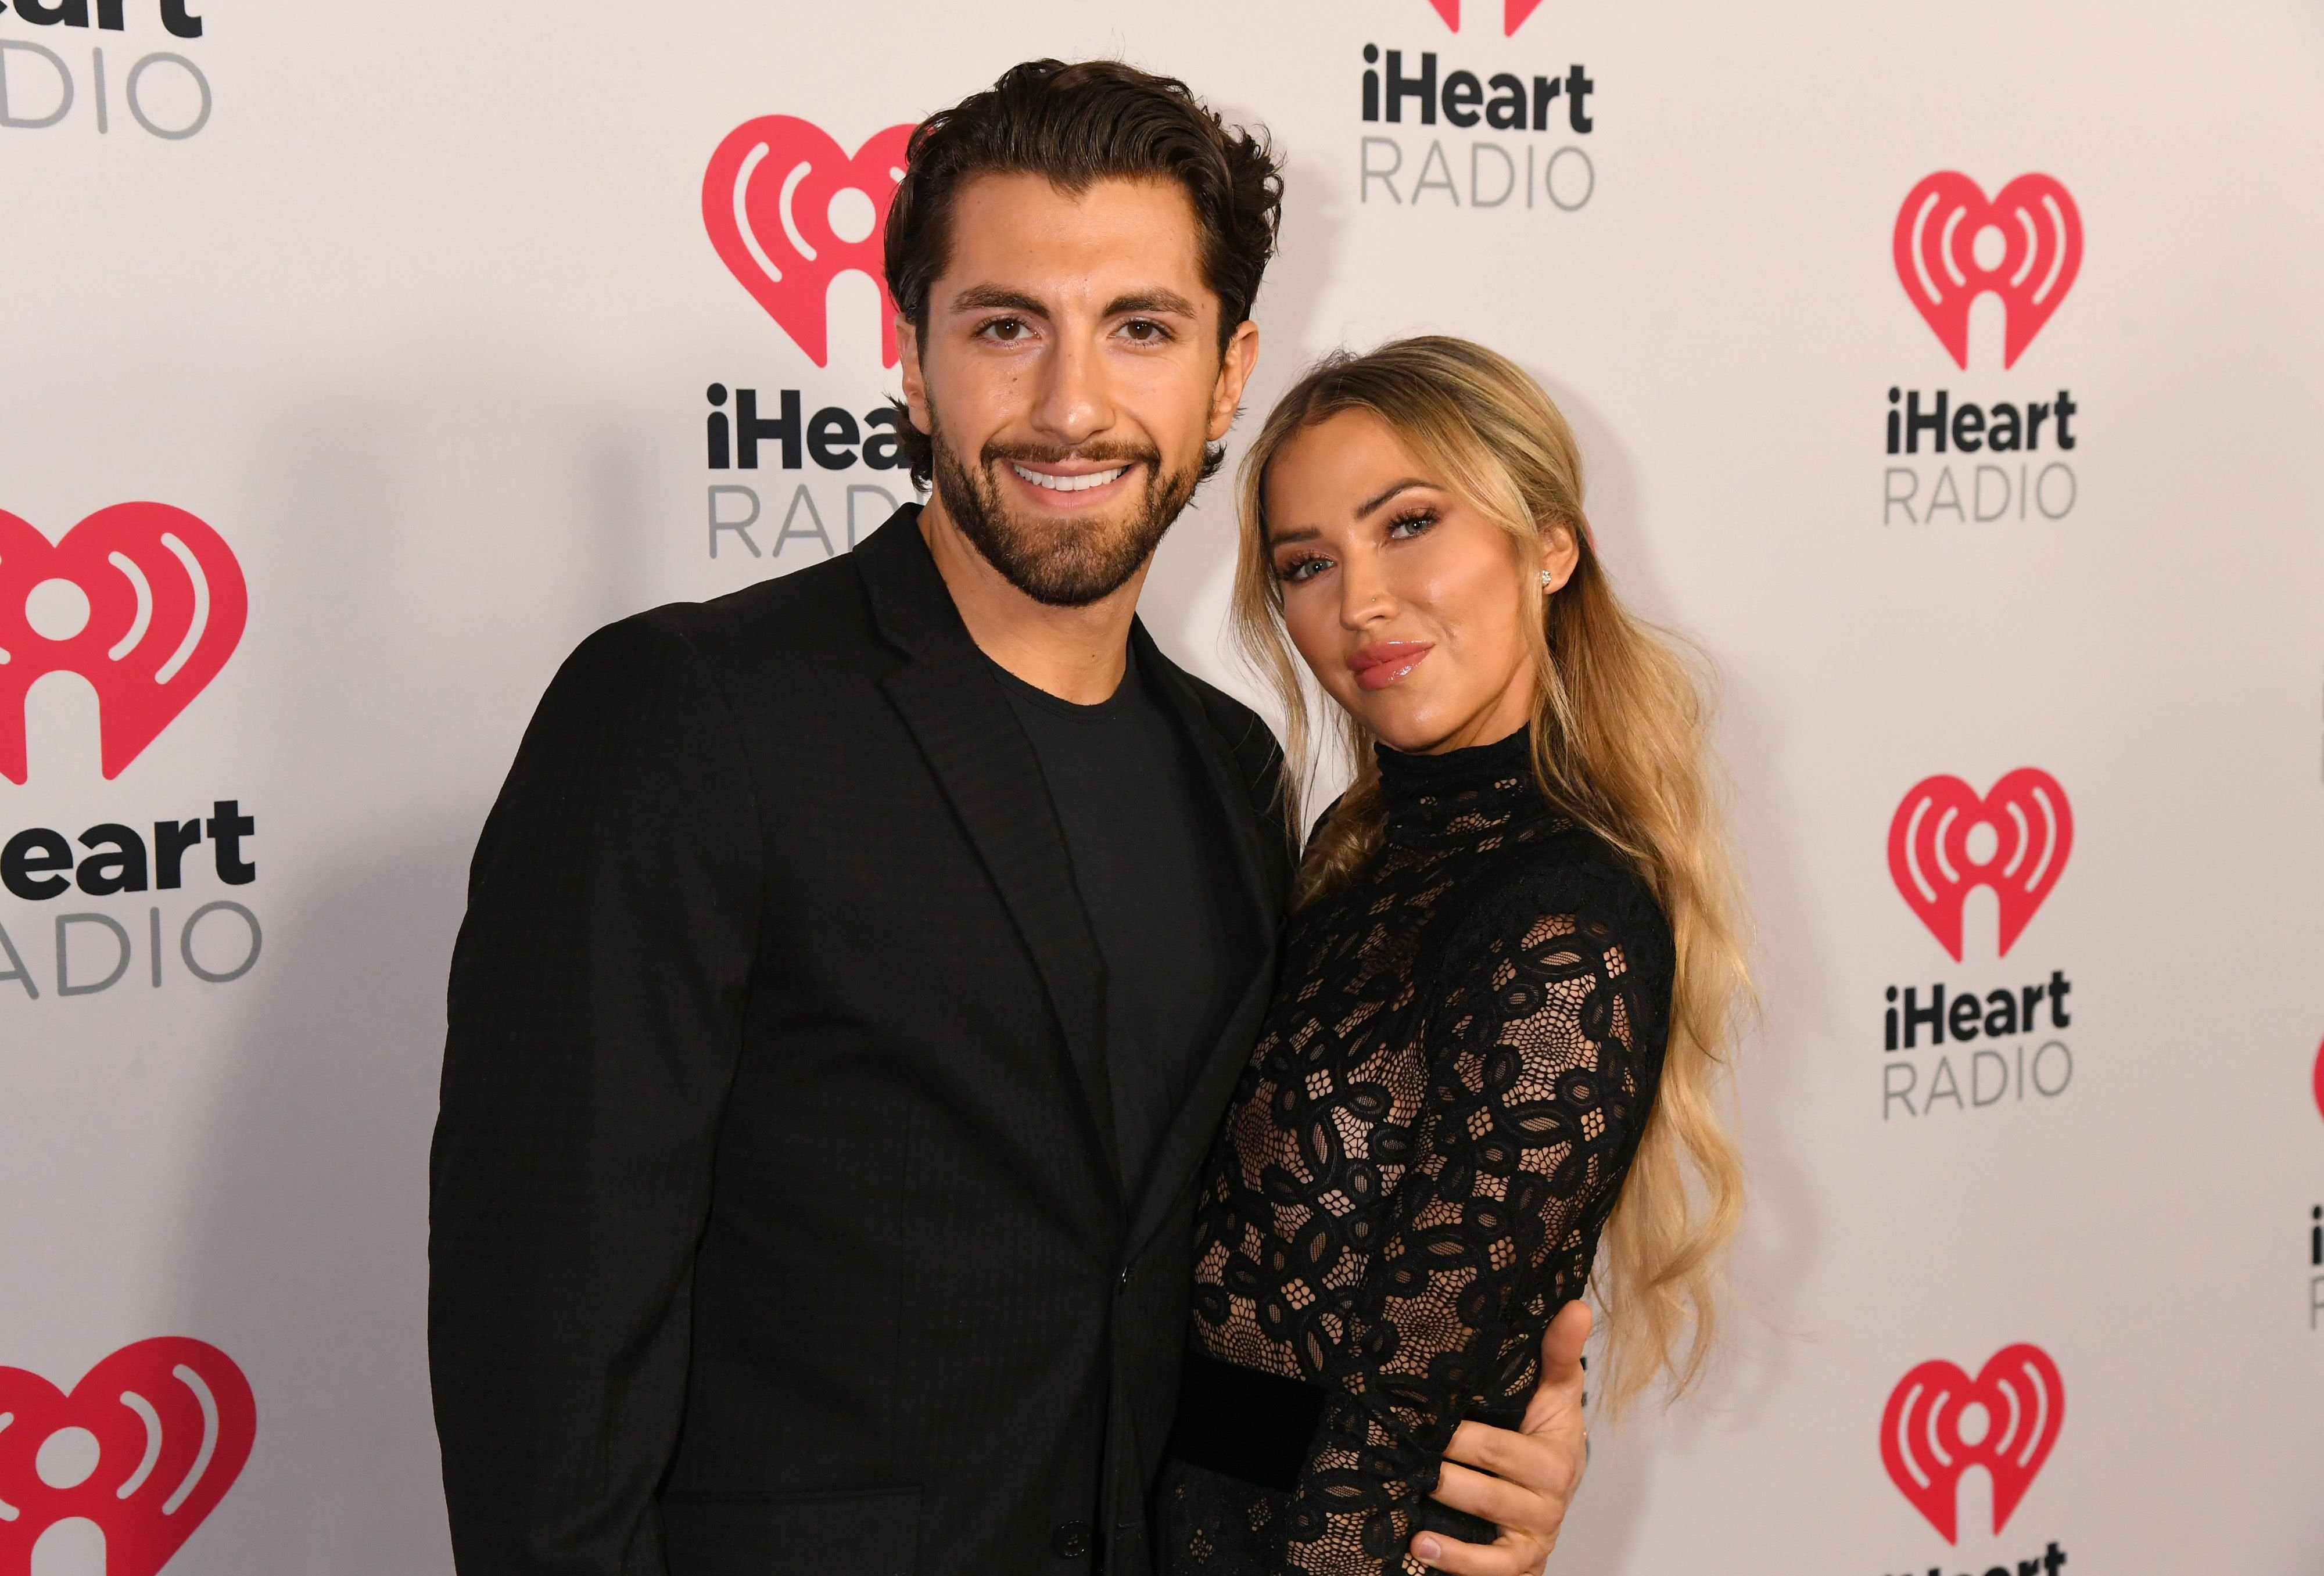 Jason Tartick and Kaitlyn Bristowe during the 2020 iHeartRadio Podcast Awards at the iHeartRadio Theater on January 17, 2020 in Burbank, California. | Source: Getty Images